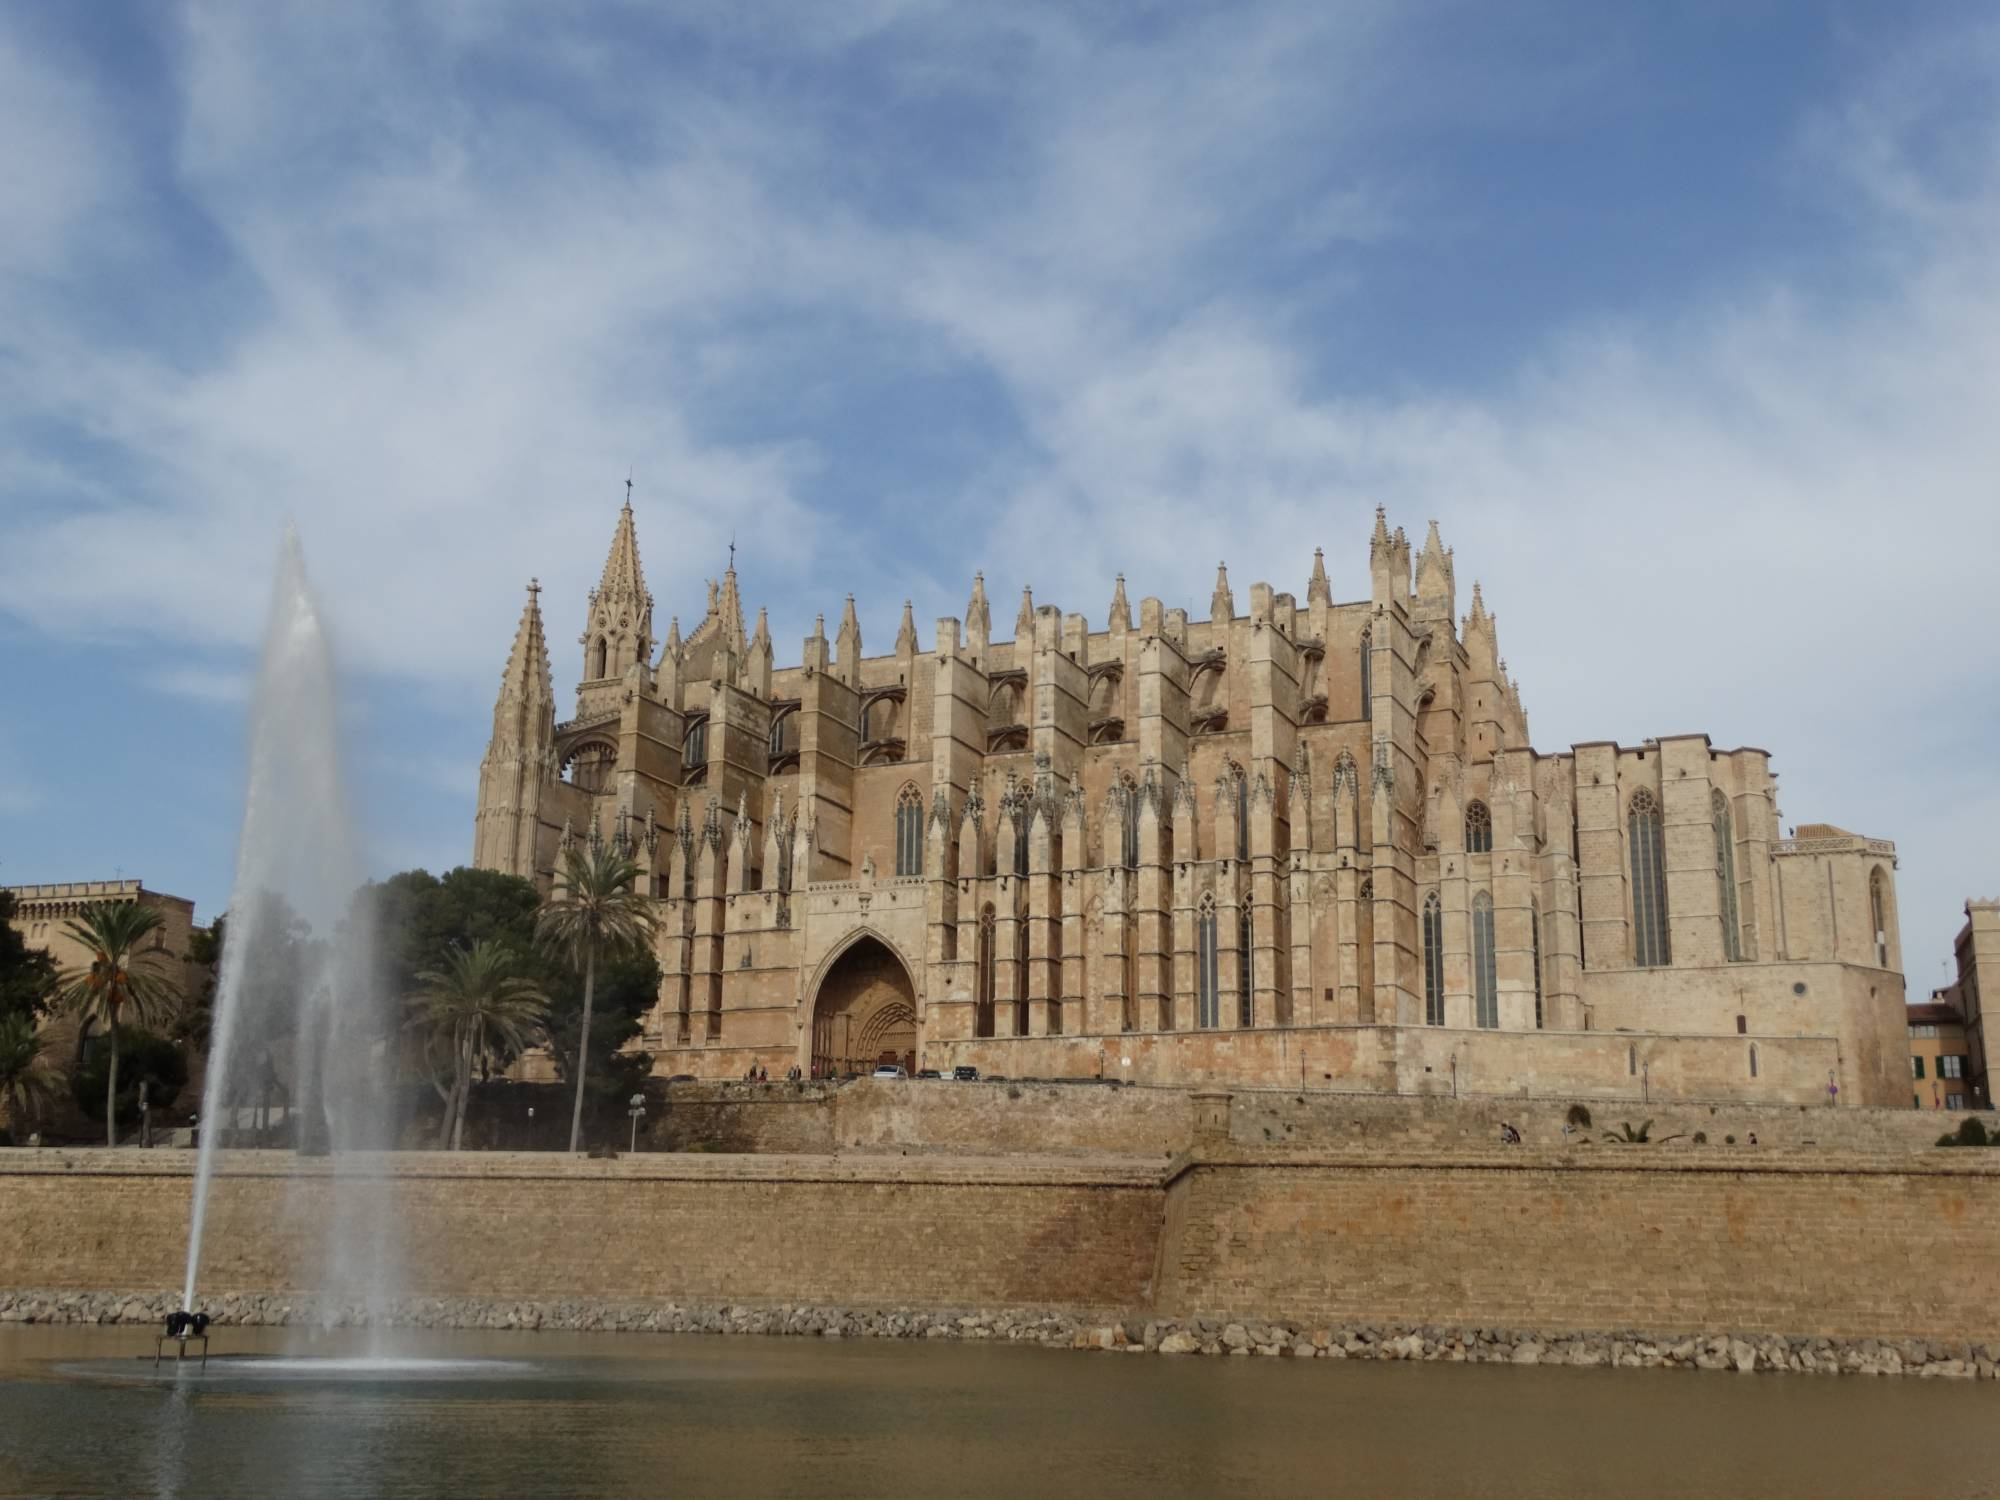 Explore the port city of Palma, on the island of Mallorca, off the coast of Spain | PassPorter.com